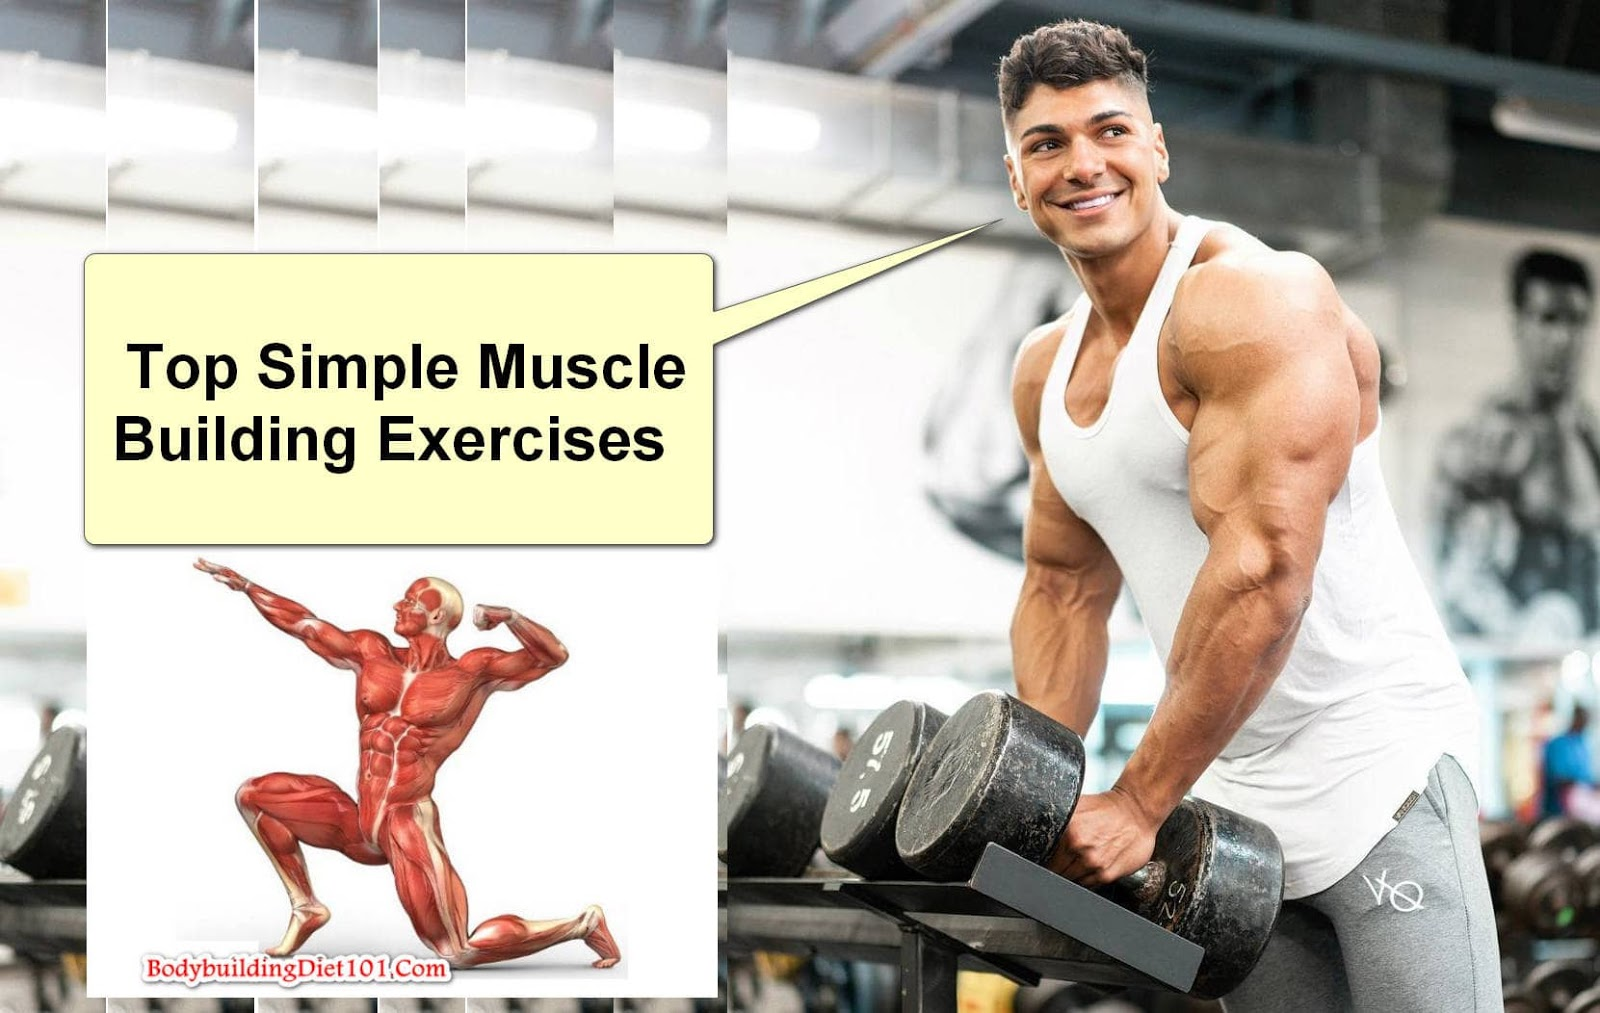 There are lots of muscle building exercises and muscle building supplements for men available in the market these days